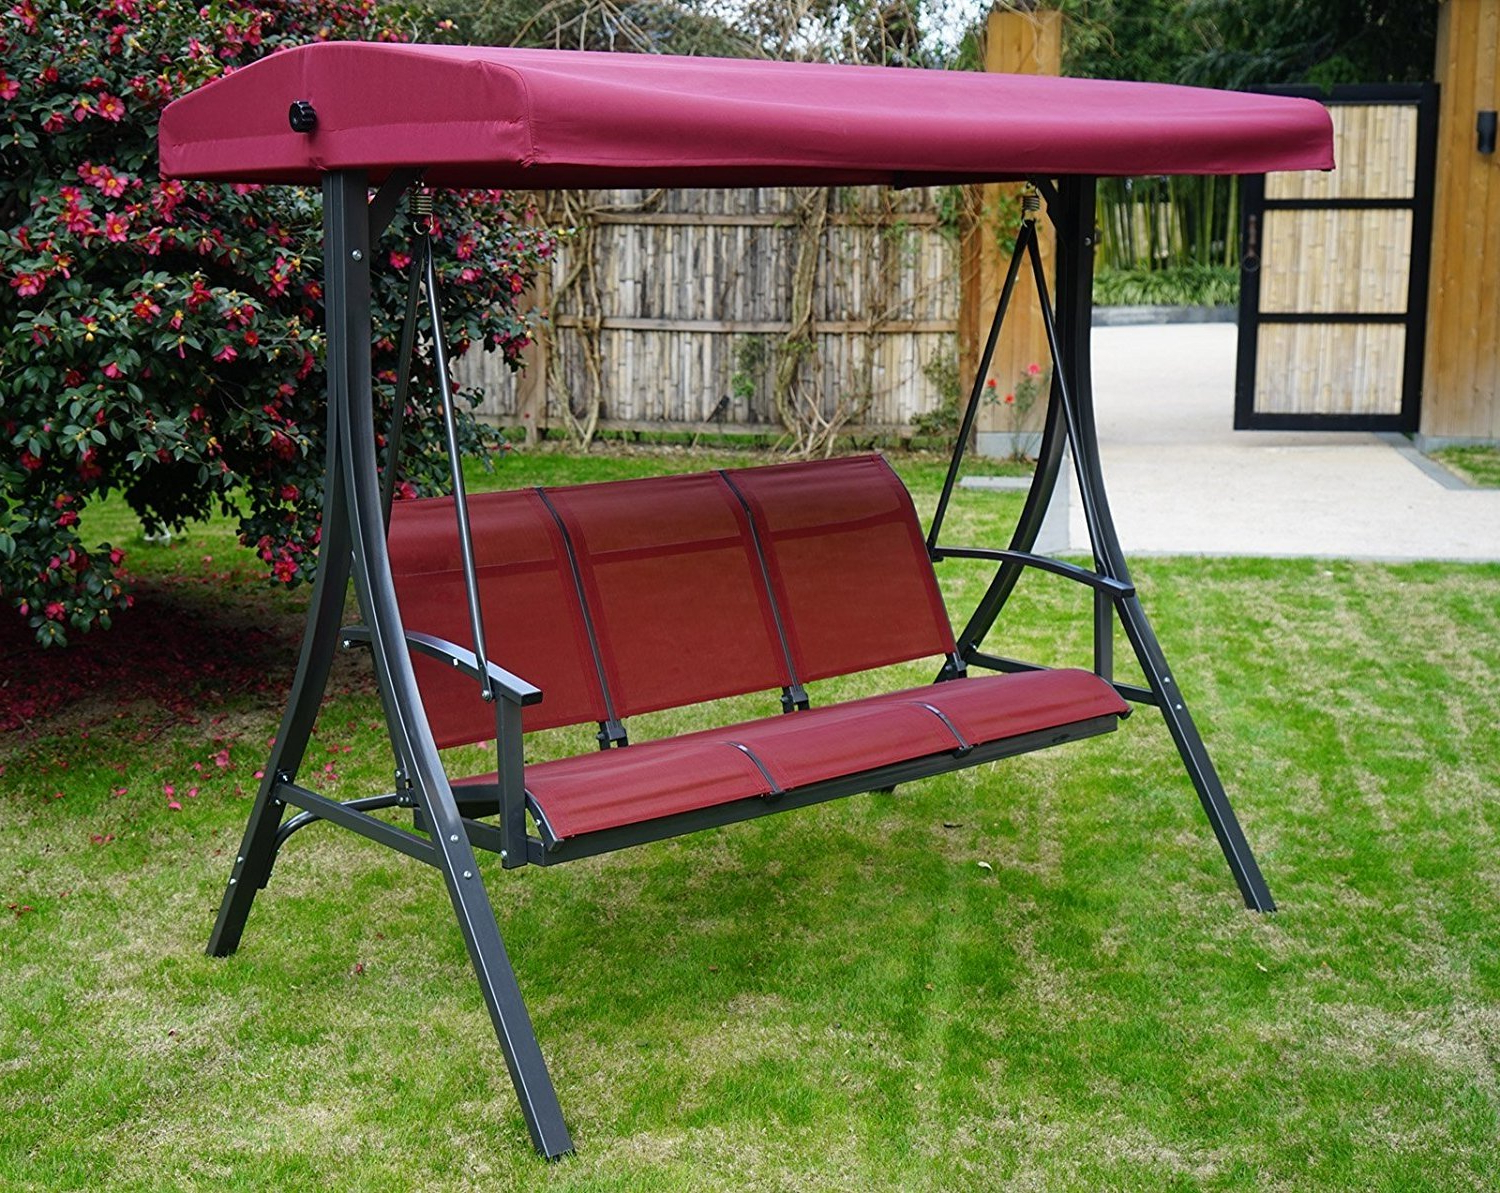 3 Person Red With Brown Powder Coated Frame Steel Outdoor Swings For Widely Used Kozyard Brenda 3 Person Outdoor Patio Swing With Strong (View 15 of 30)